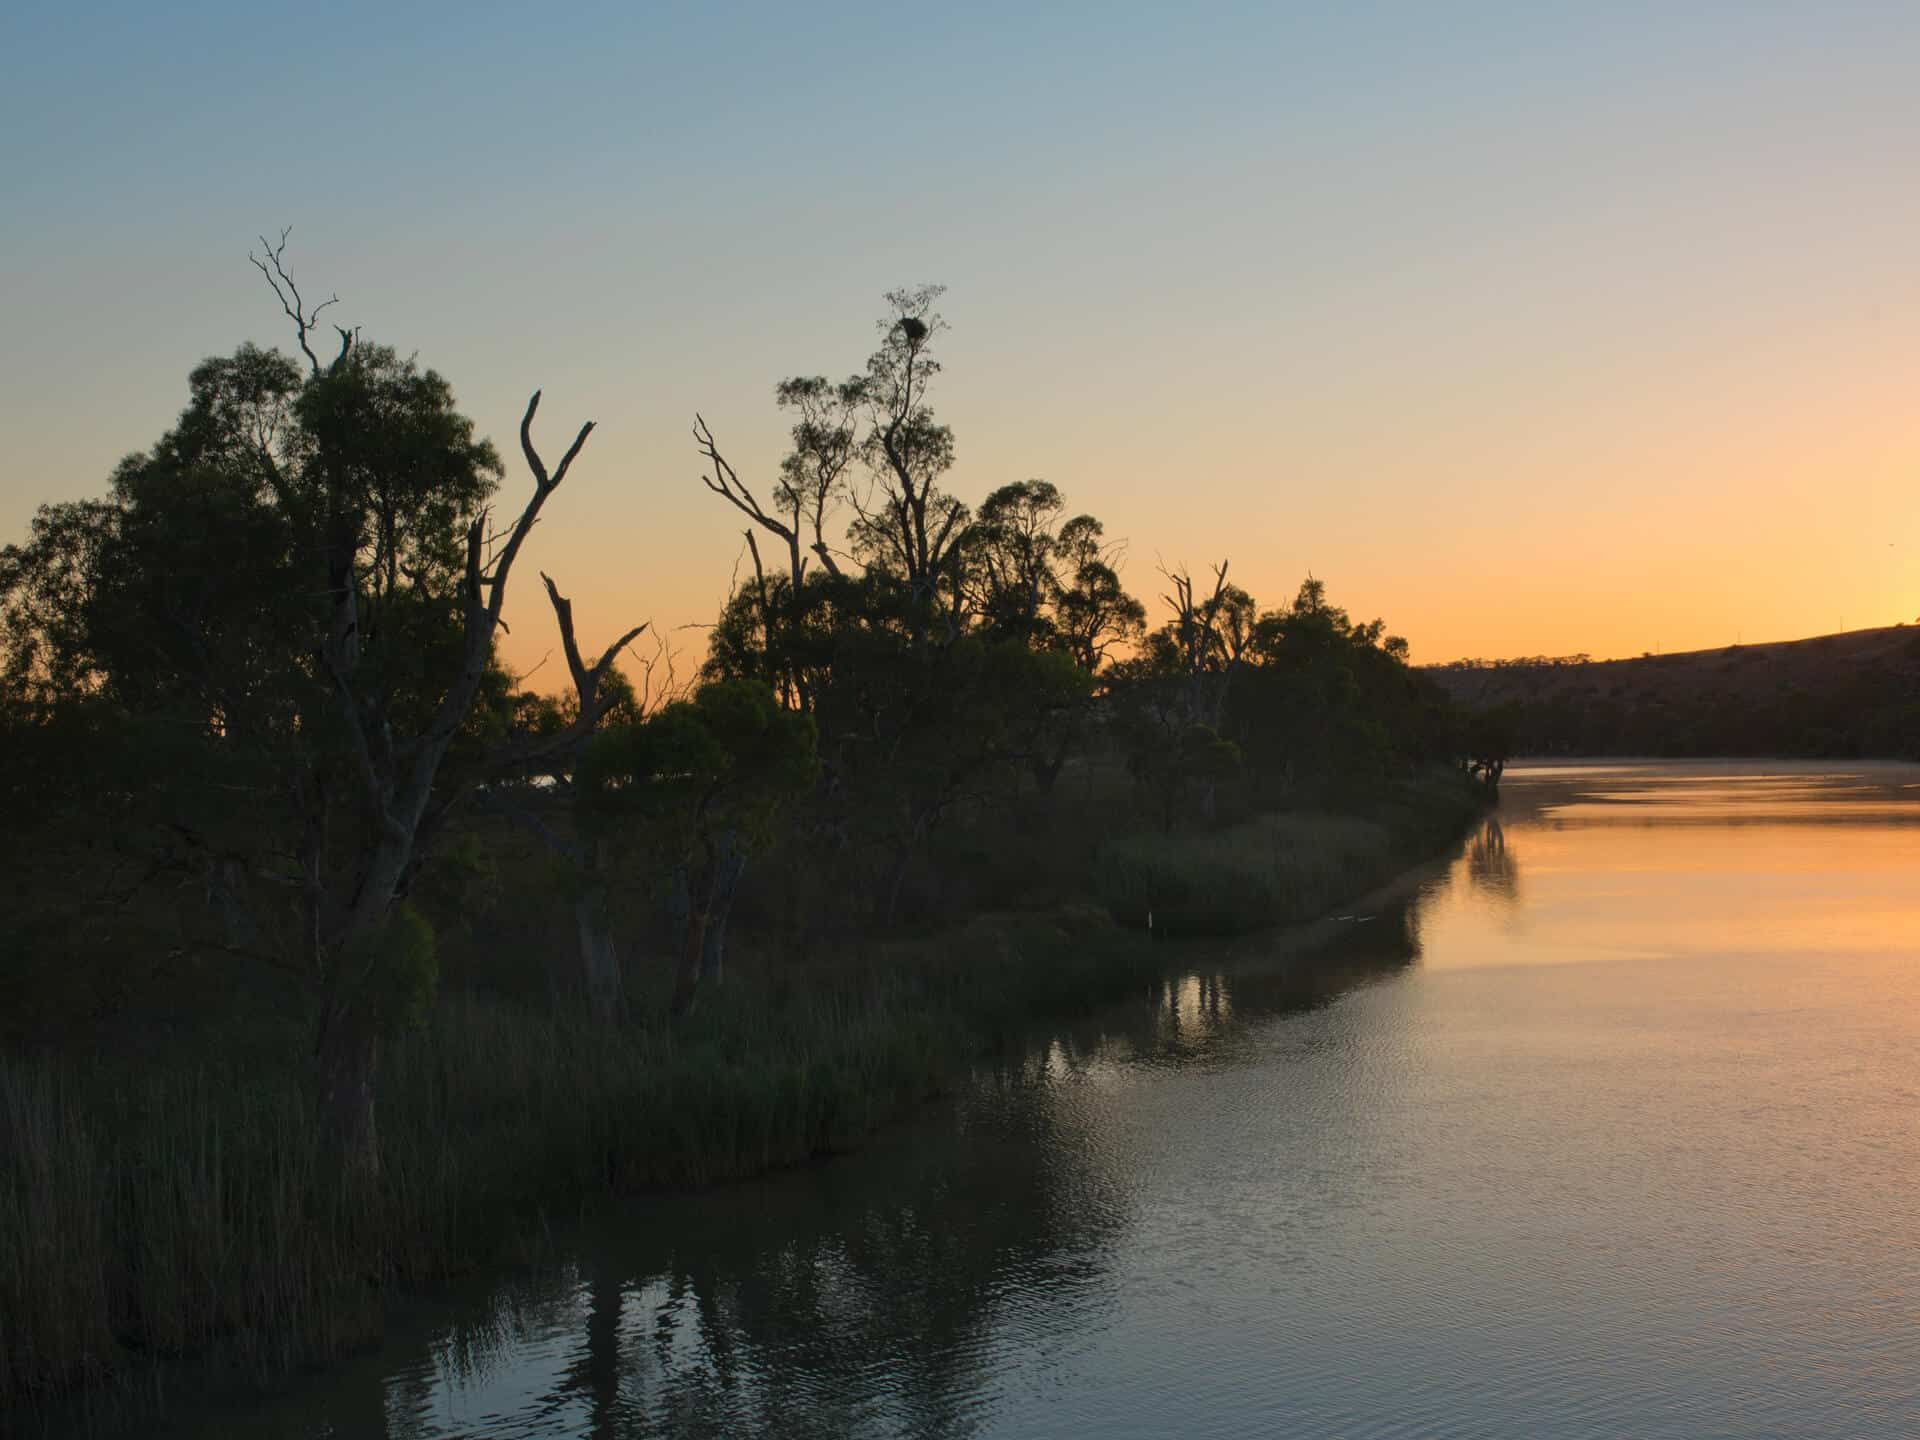 Picturesque sunset on the Murray River